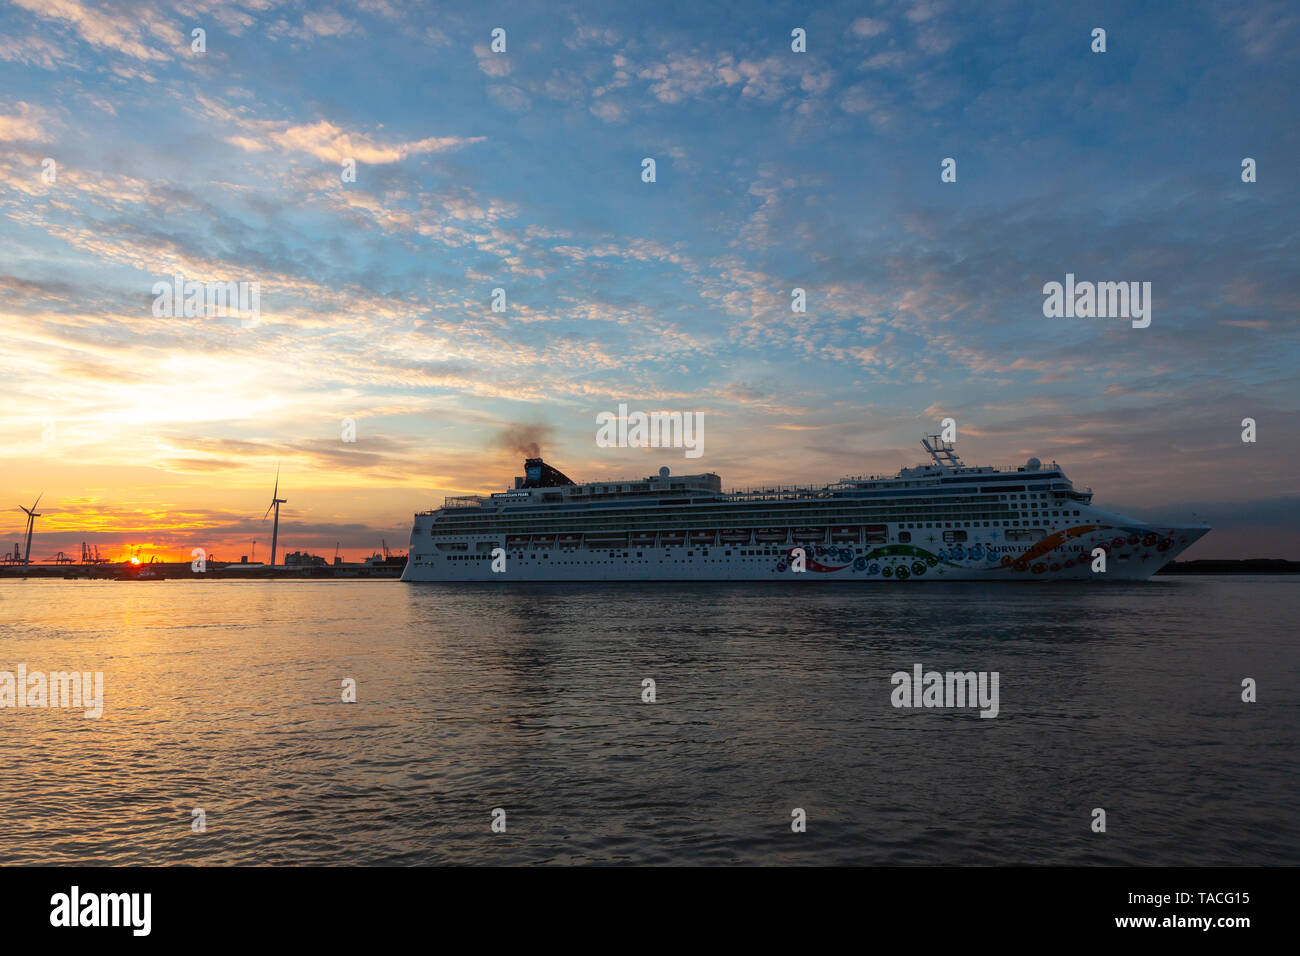 Gravesend, Kent, United Kingdom. 23rd May, 2019. 294 metre long cruise ship Norwegian Pearl pictured departing the River Thames at sunset on 23rd May. The ship is believed to be the longest cruise ship to have moored on the Thames. Rob Powell/Alamy Live News Stock Photo